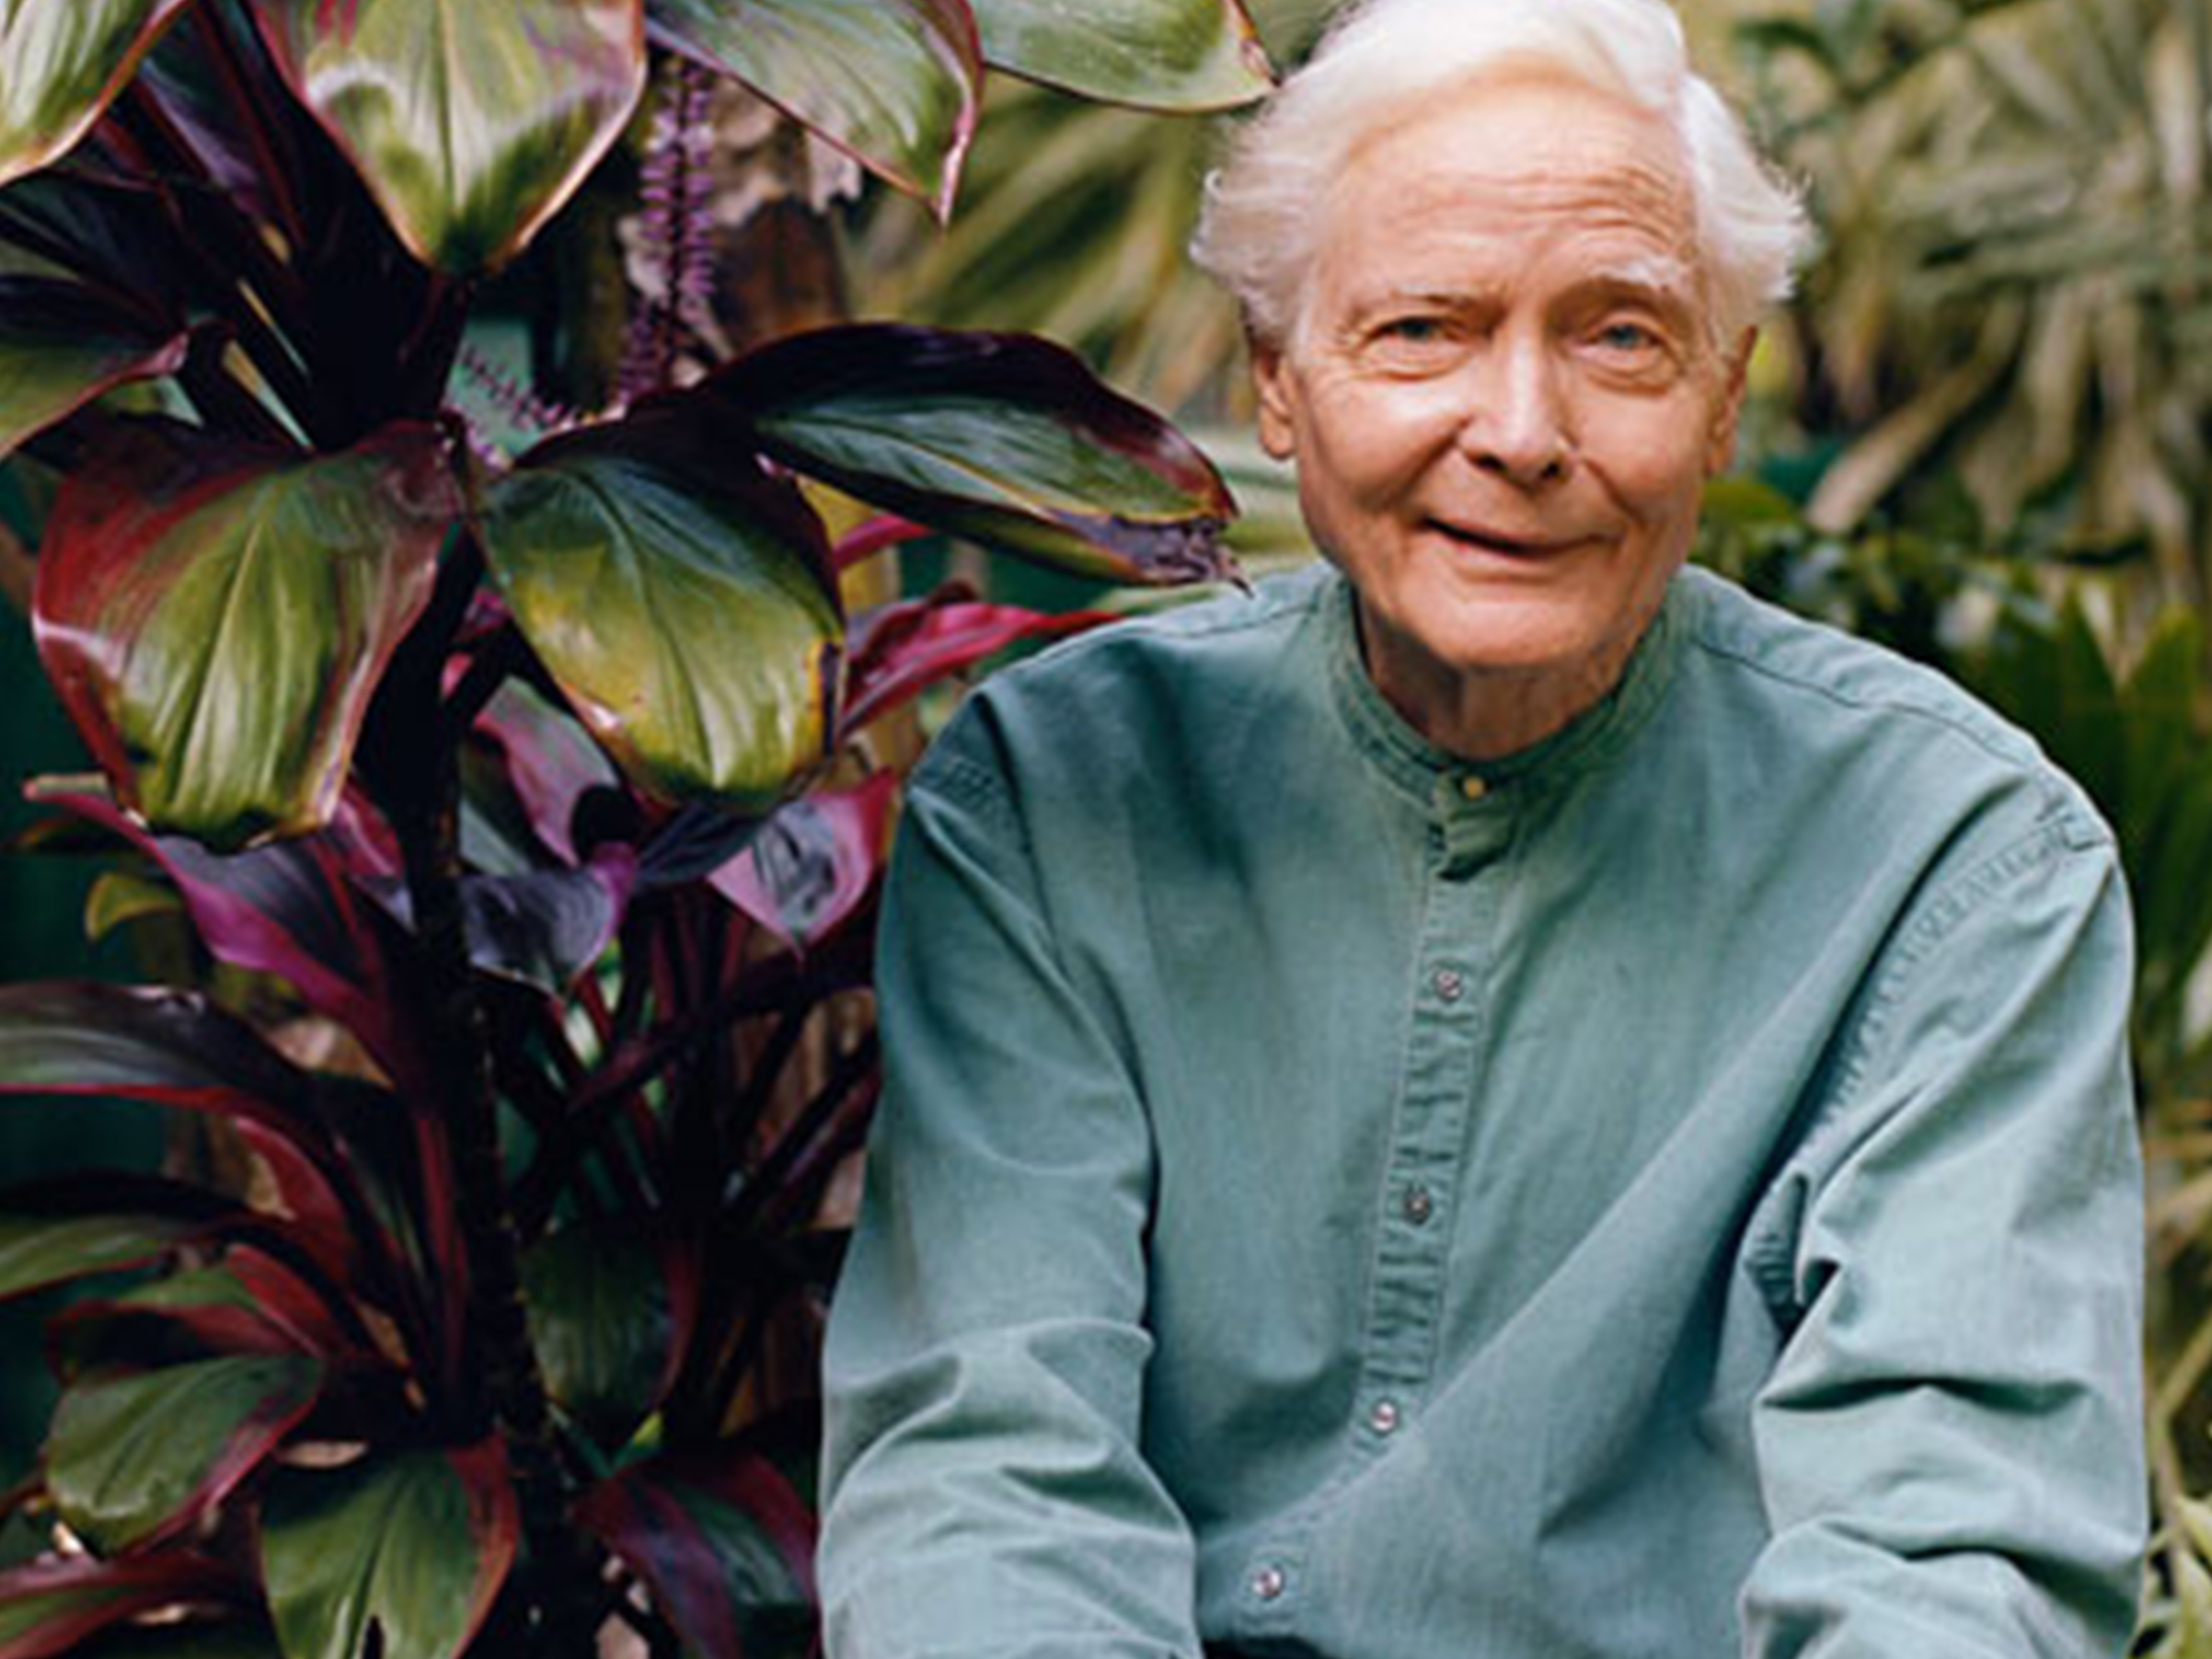 Poet W.S. Merwin, Who Was Inspired By Conservation, Dies At 91